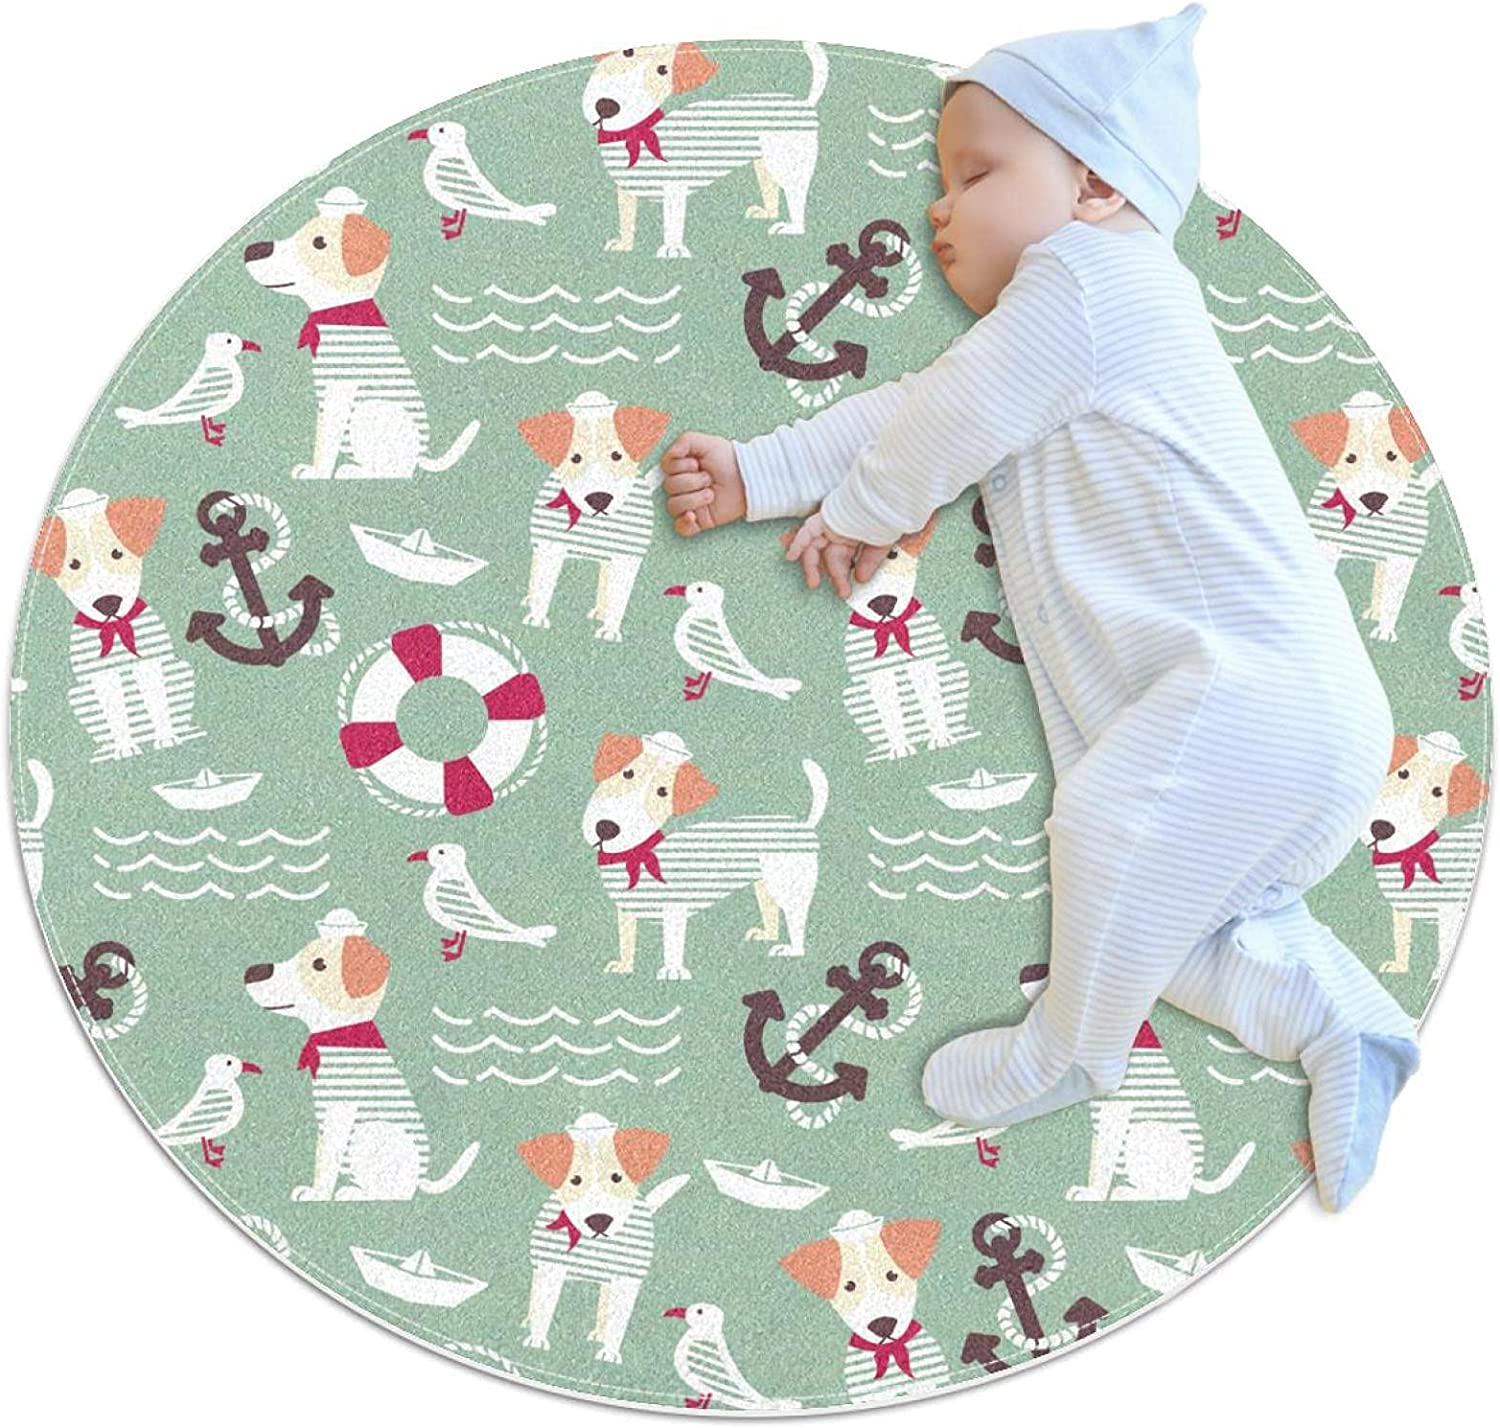 Area Rugs for Bedroom, Ultra-Luxurious Soft and Thick Non-Slip Carpet for Kids Baby Room, Nursery Modern Decor Rug 2.3Ft, Sailor Dog Lifebuoy Animal